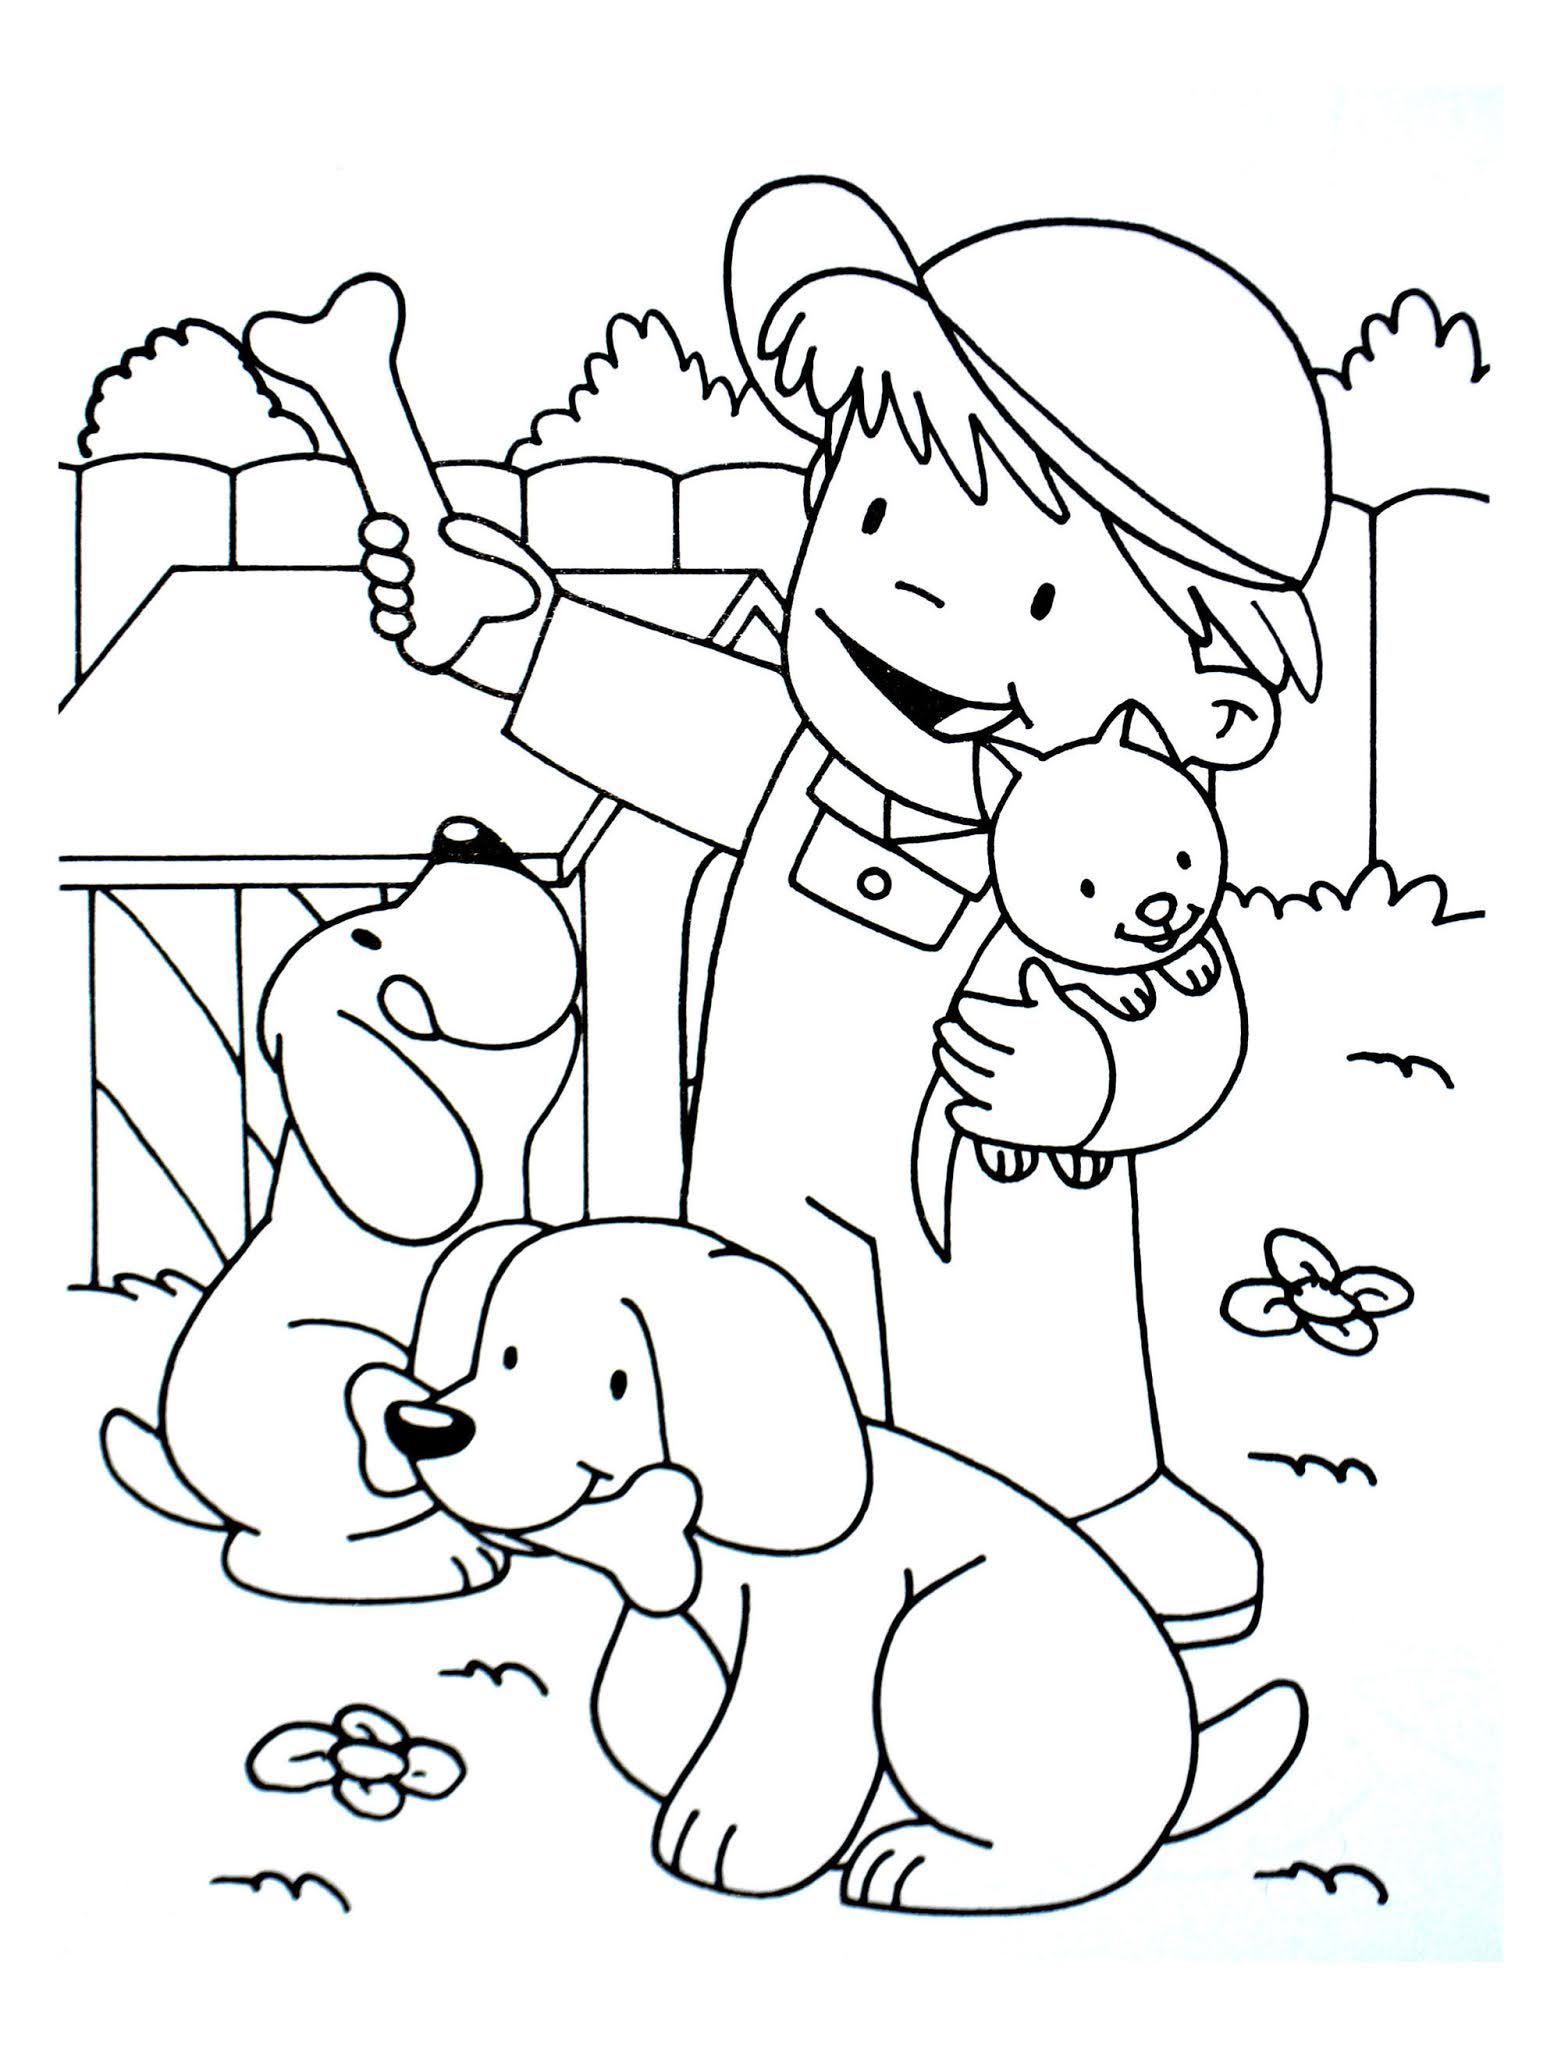 Dogs coloring pages 66